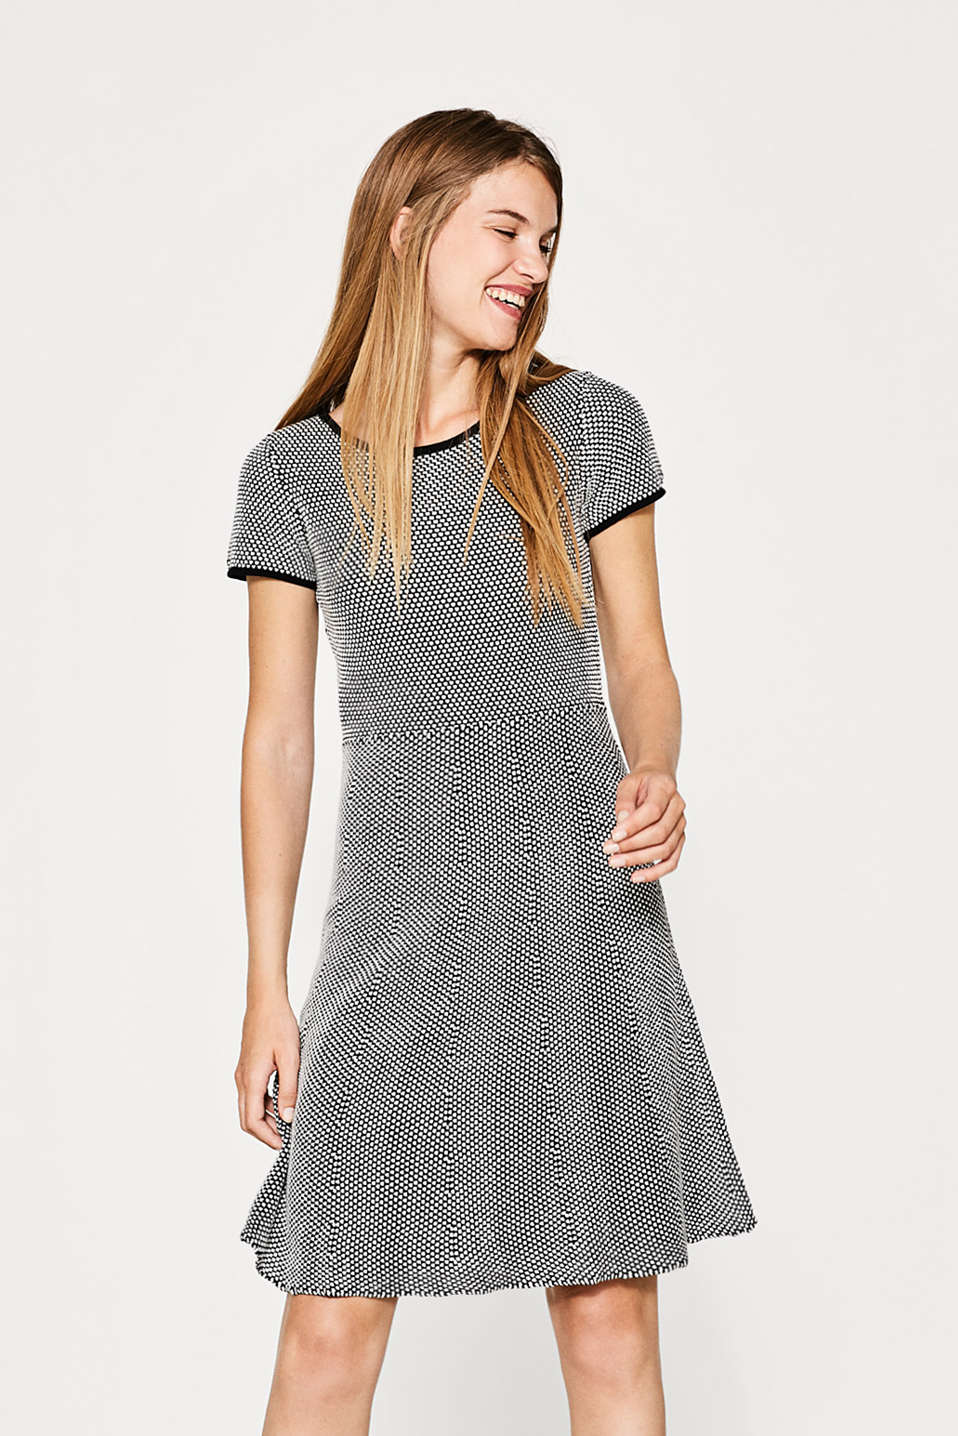 Esprit - Textured knitted dress, blended cotton